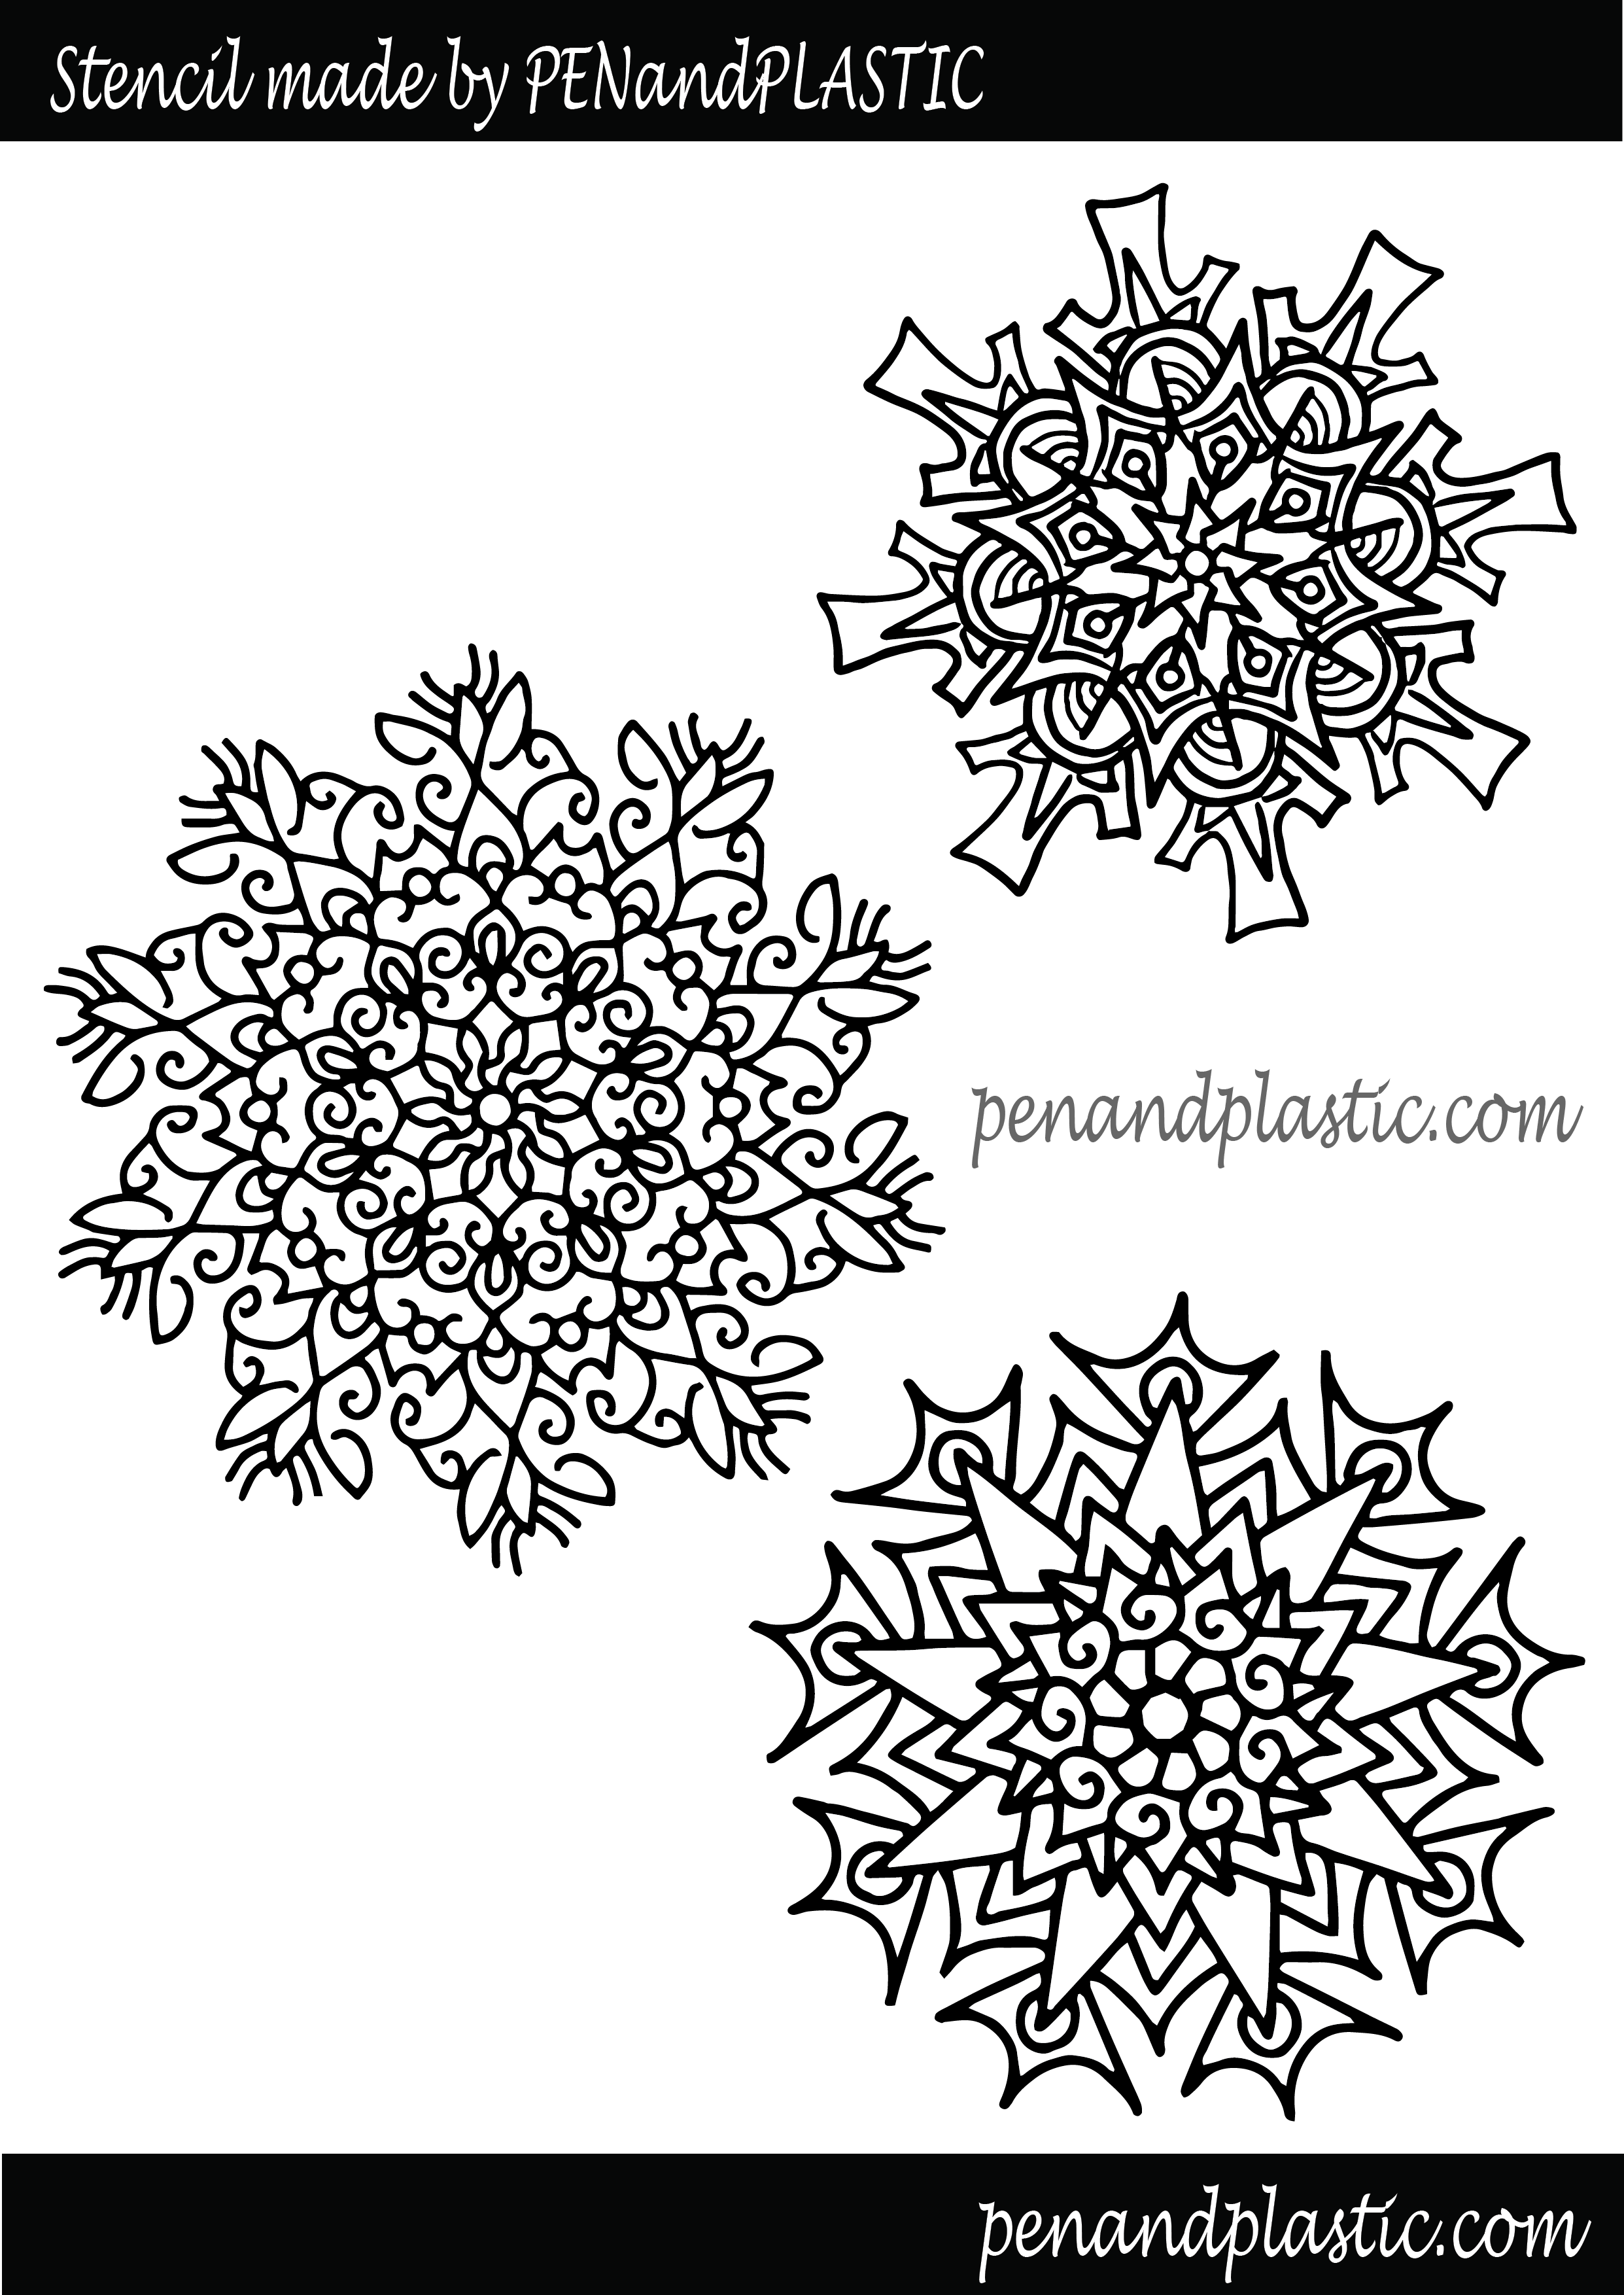 photo about 3doodler Stencils Printable referred to as 3D Pen Stencils and Templates - Cost-free Downloads Inside of